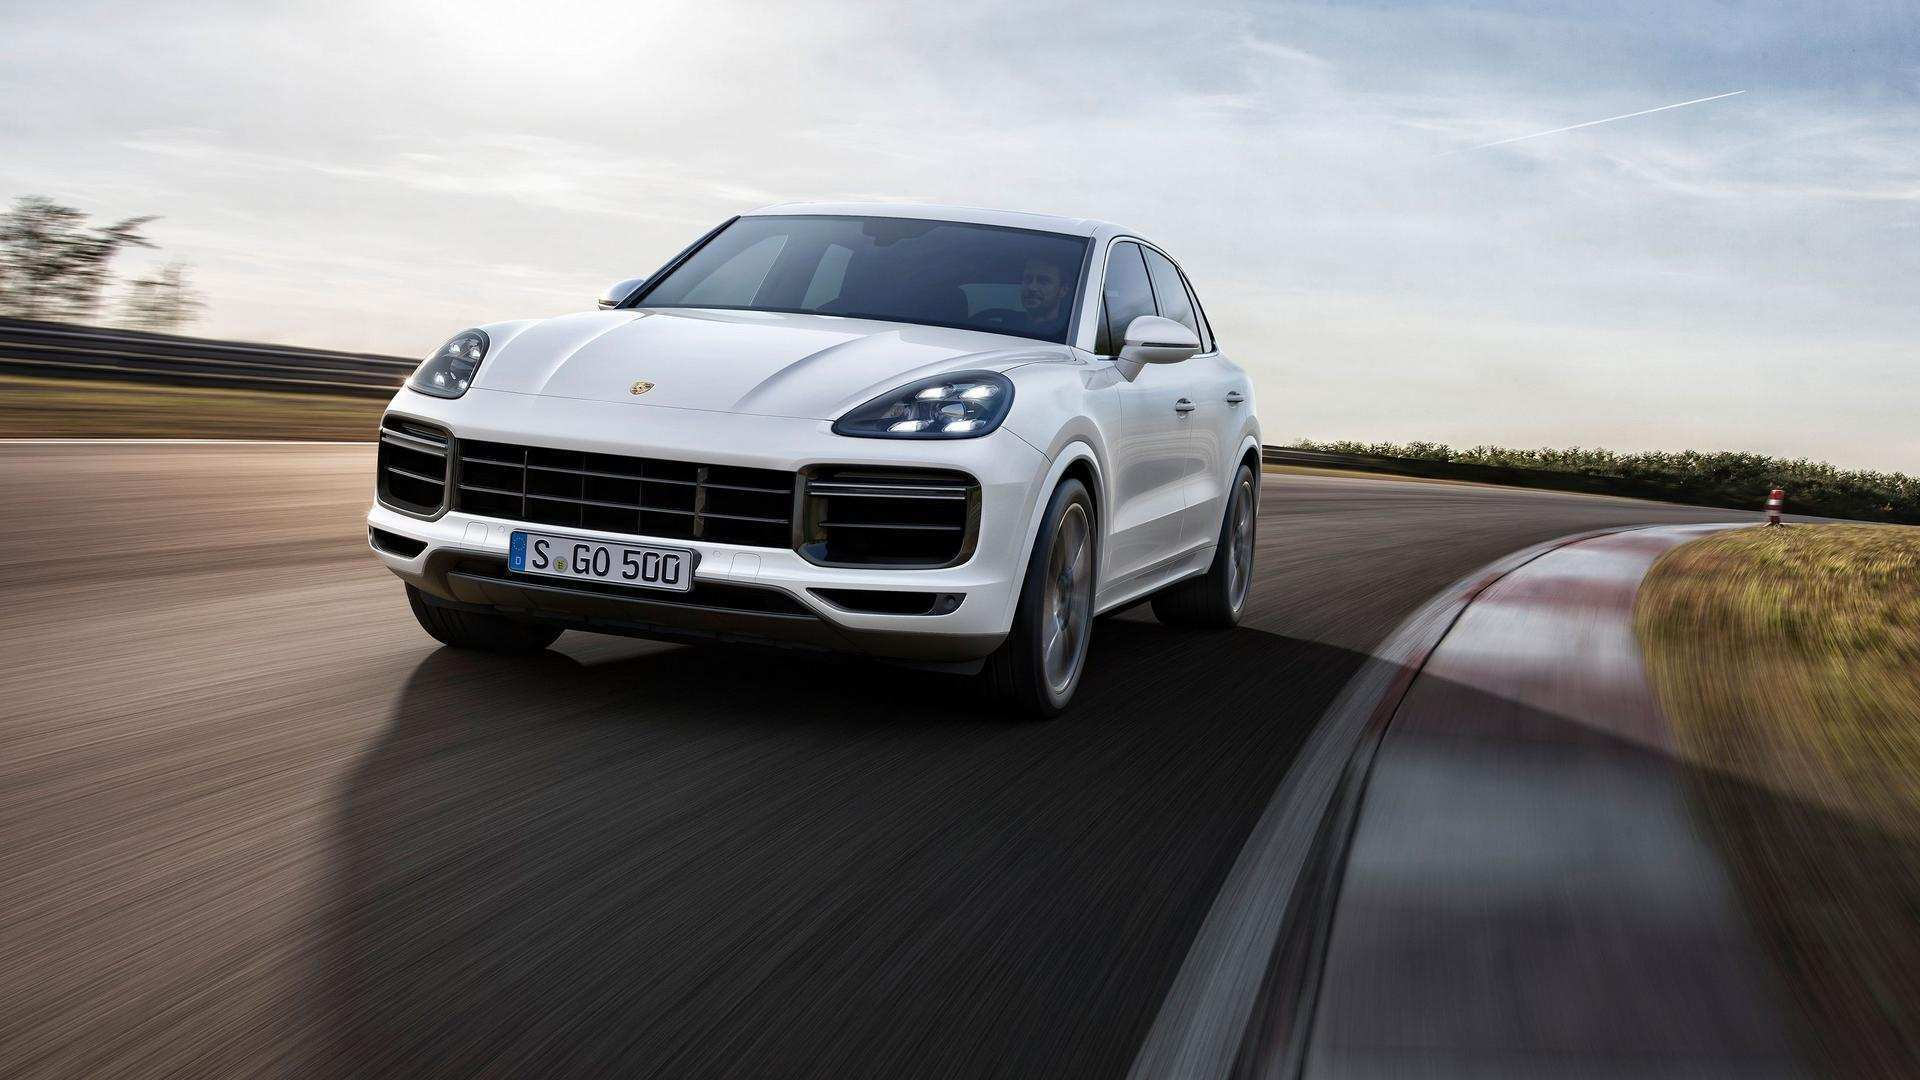 56 The Best 2019 Porsche Cayenne Turbo S Research New